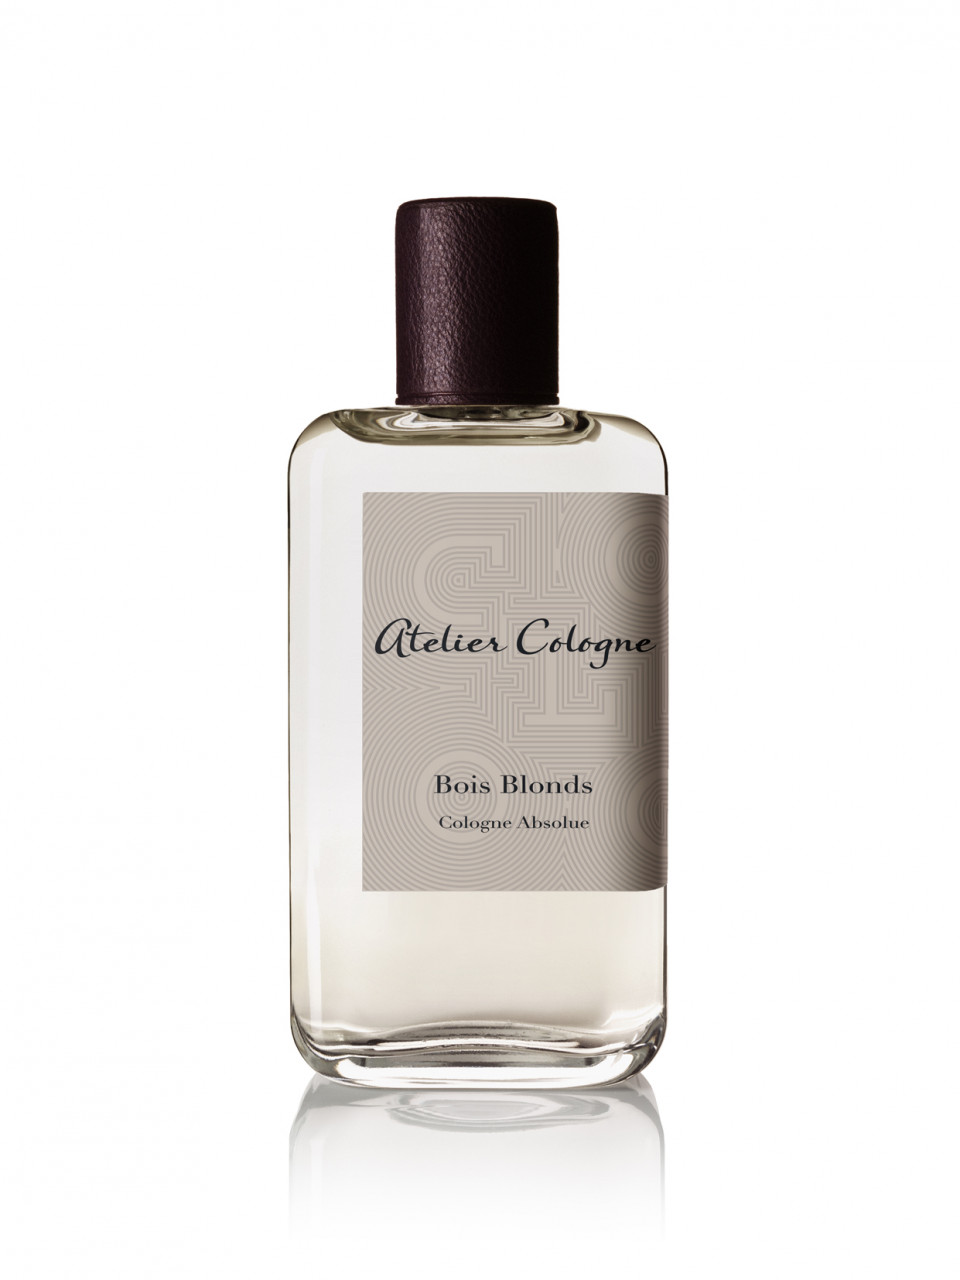 Bois Blonds Cologne Absolue